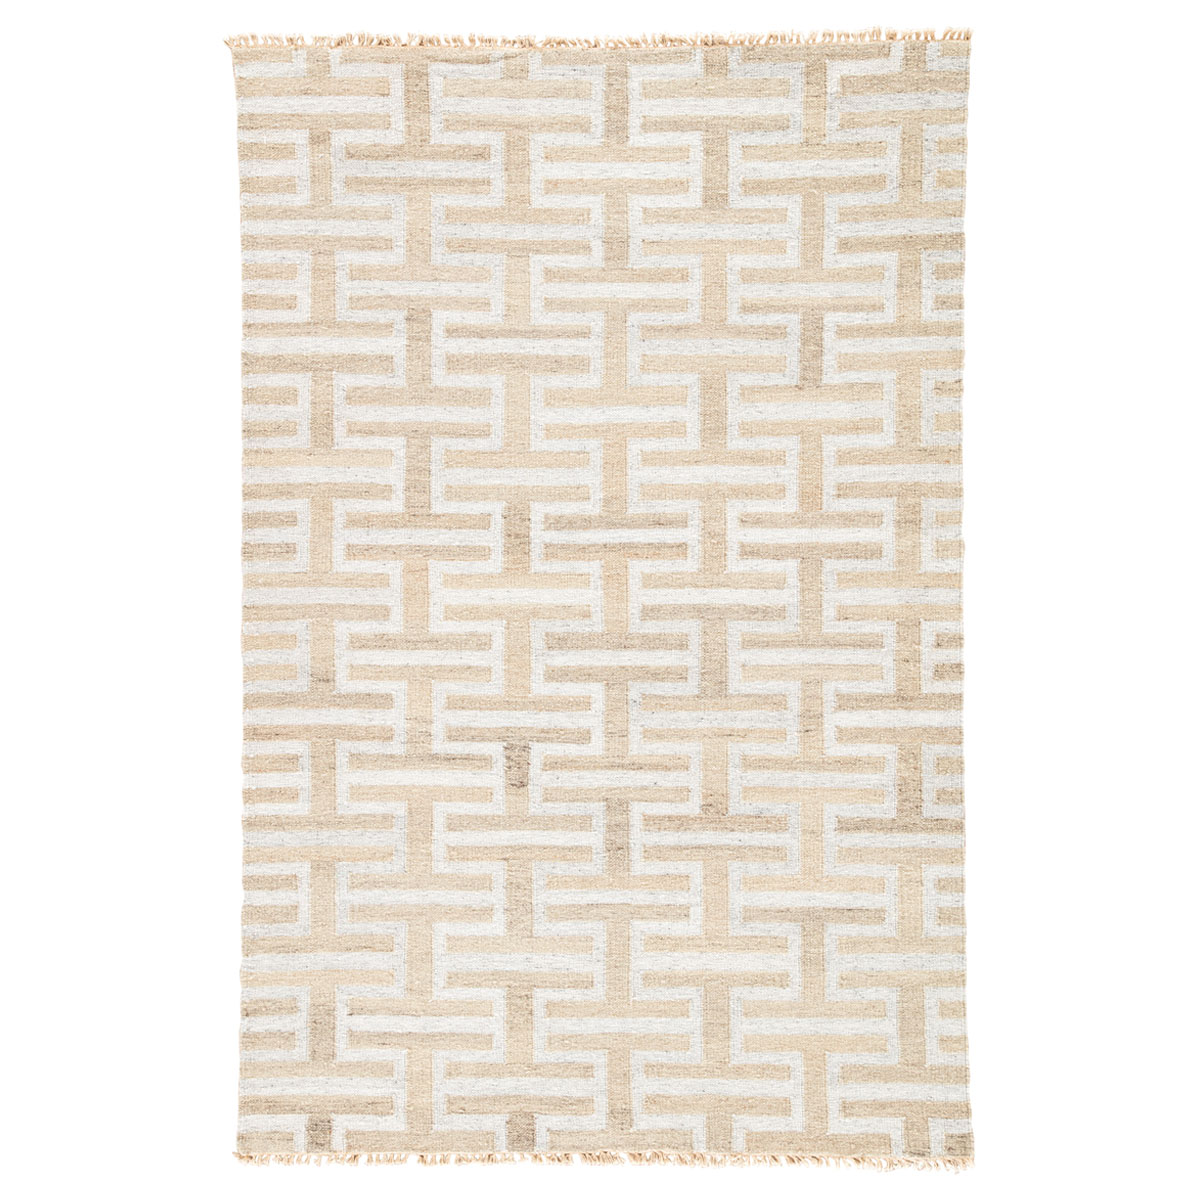 Silver Geometric Stacked Rug - 9 x 12